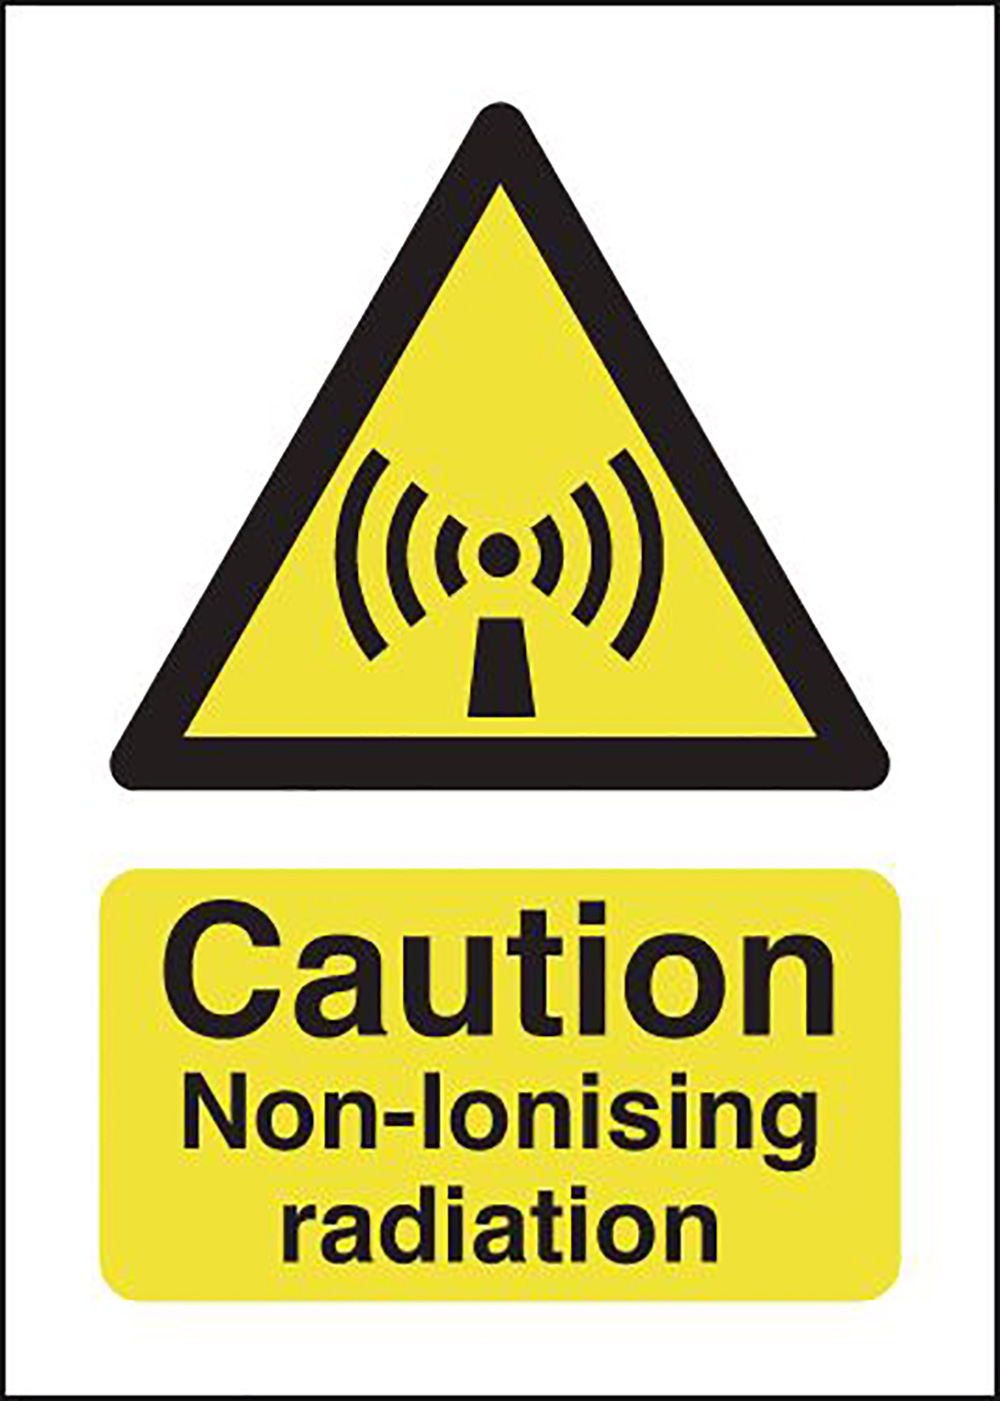 Caution Non-ionising Radiation 210x148mm 1.2mm Rigid Plastic Safety Sign